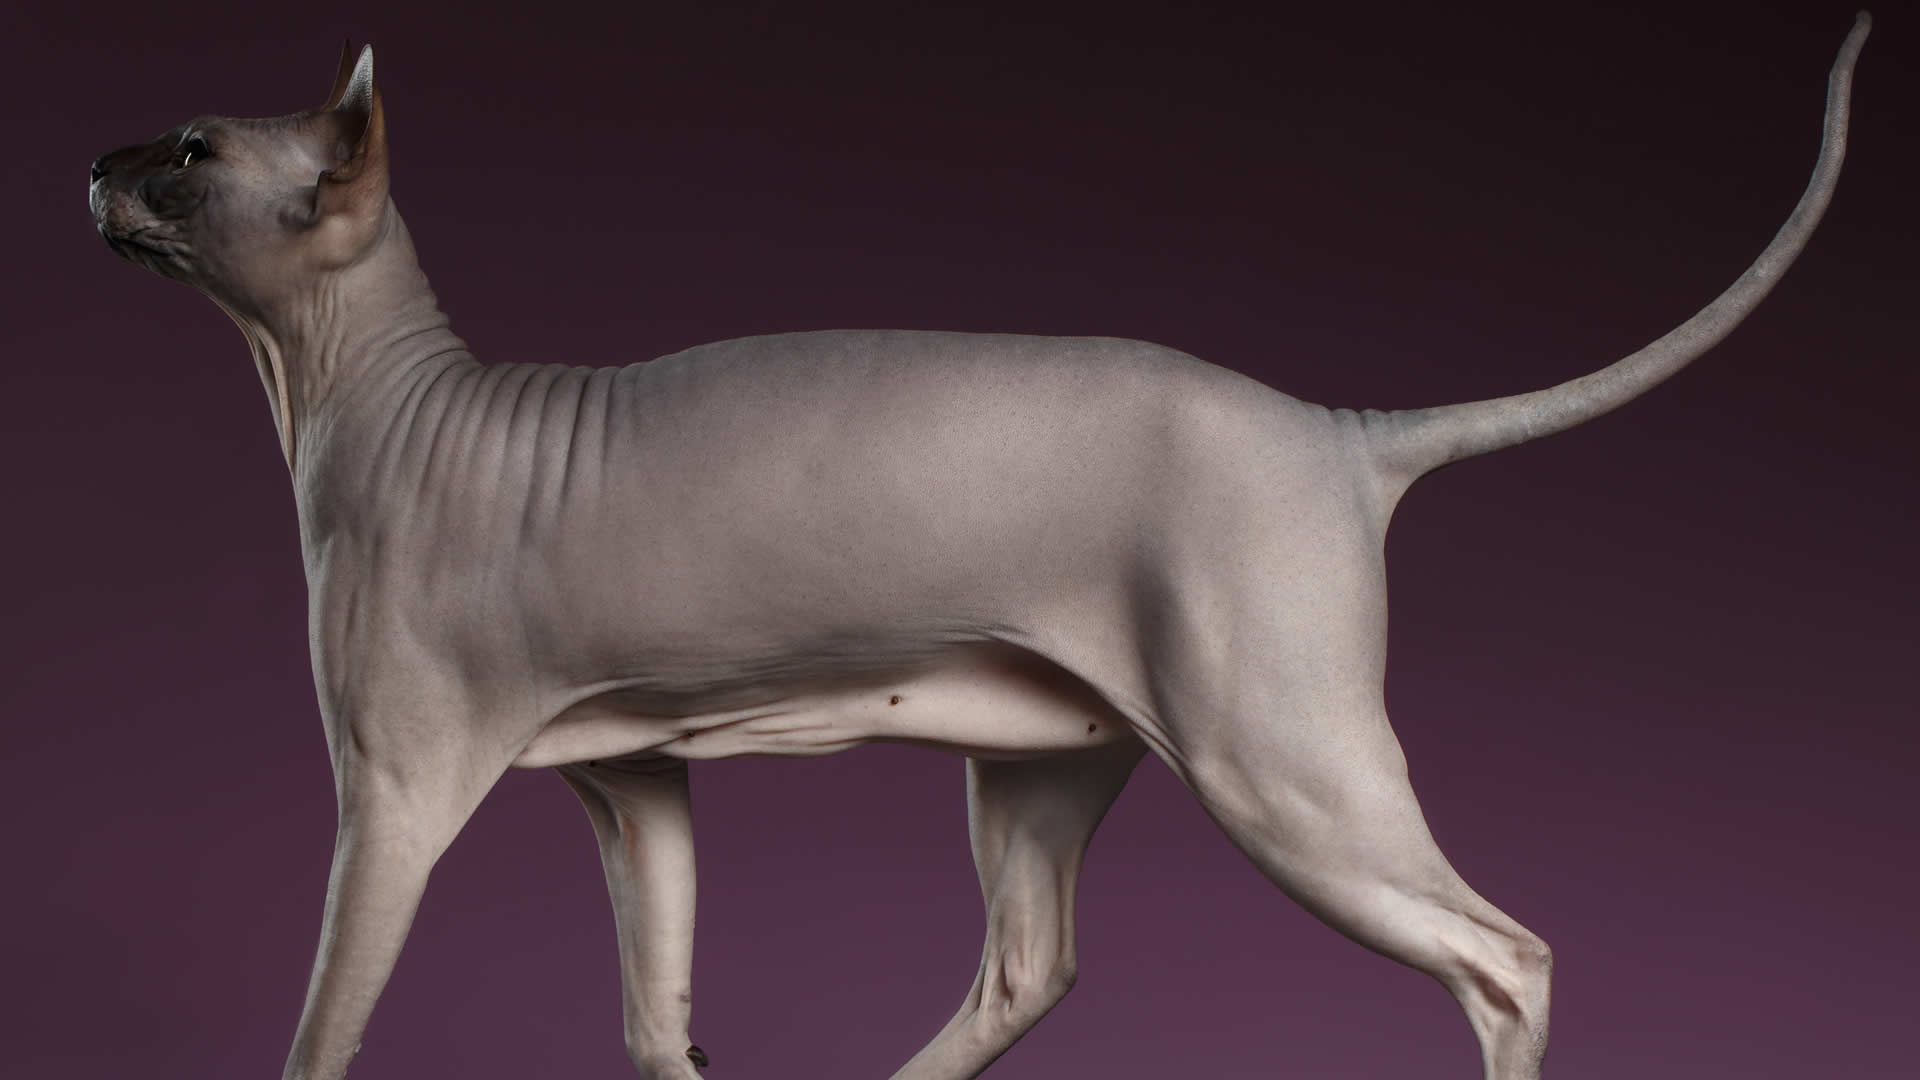 Sphynx cats don't always have curly tails